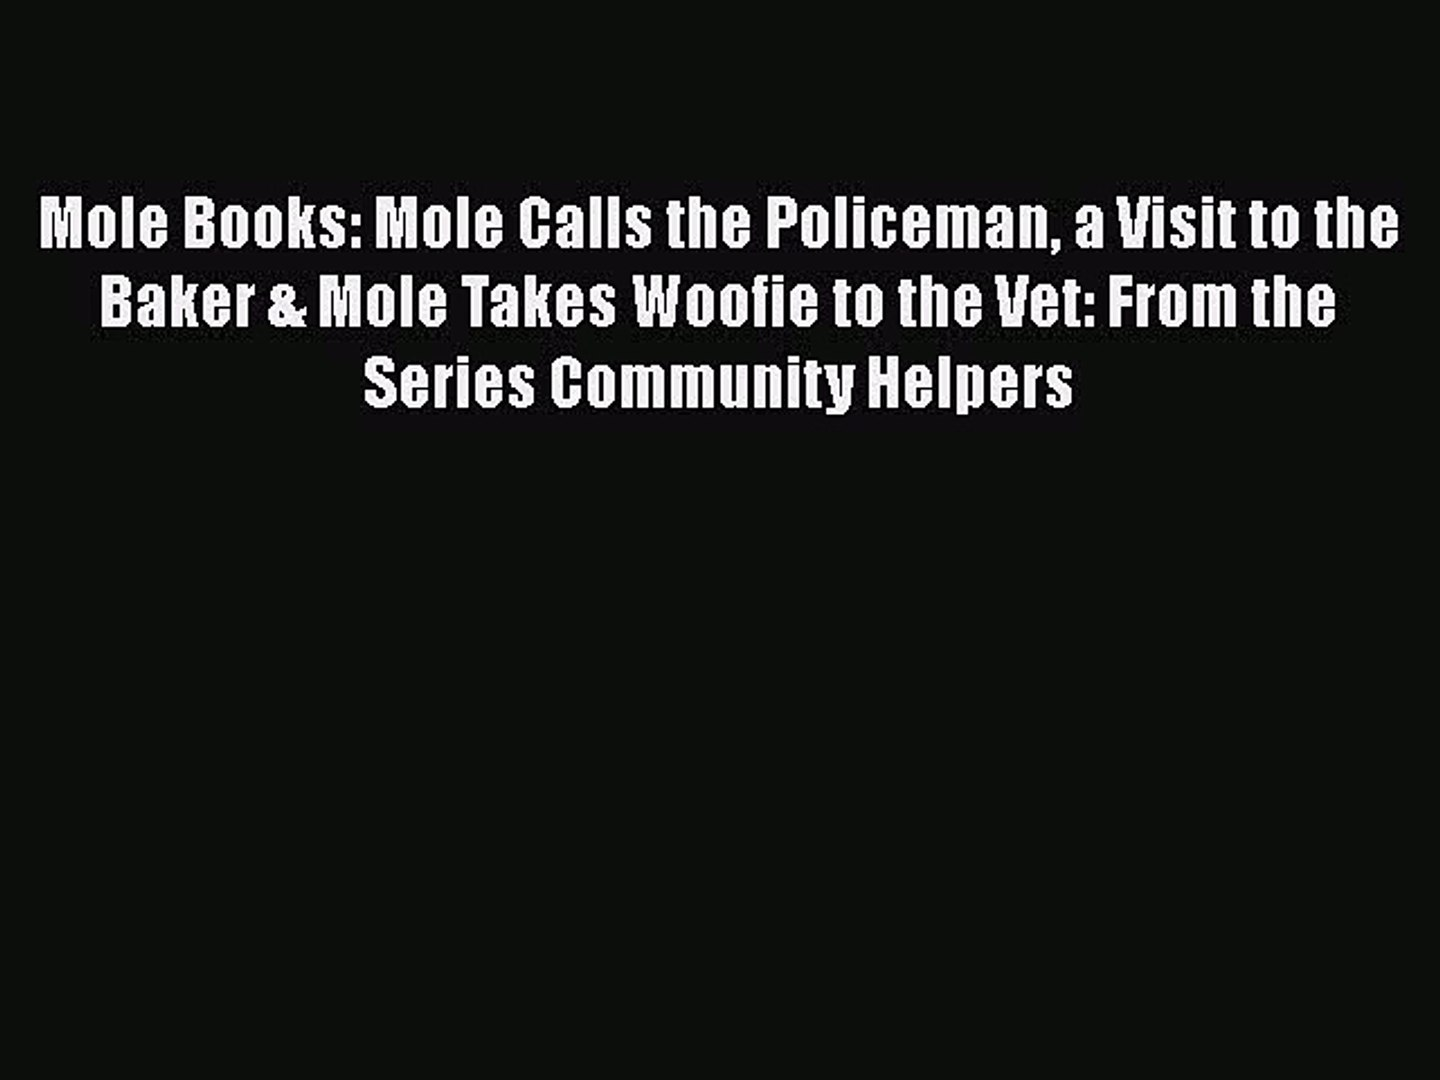 Read Mole Books: Mole Calls the Policeman a Visit to the Baker & Mole Takes Woofie to the Vet: